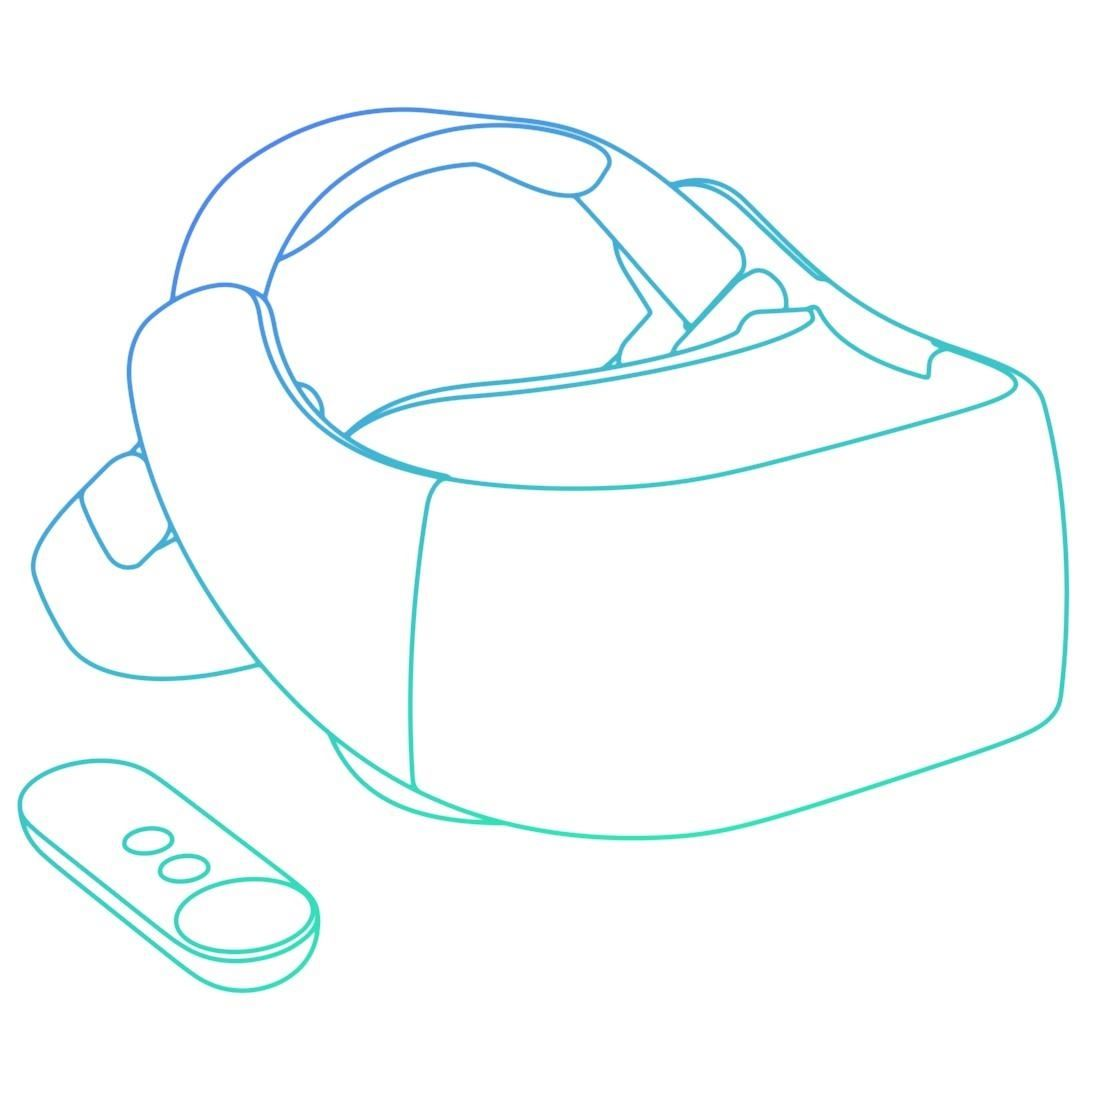 Will Google's Standalone VR Headsets Enable AR Experiences?